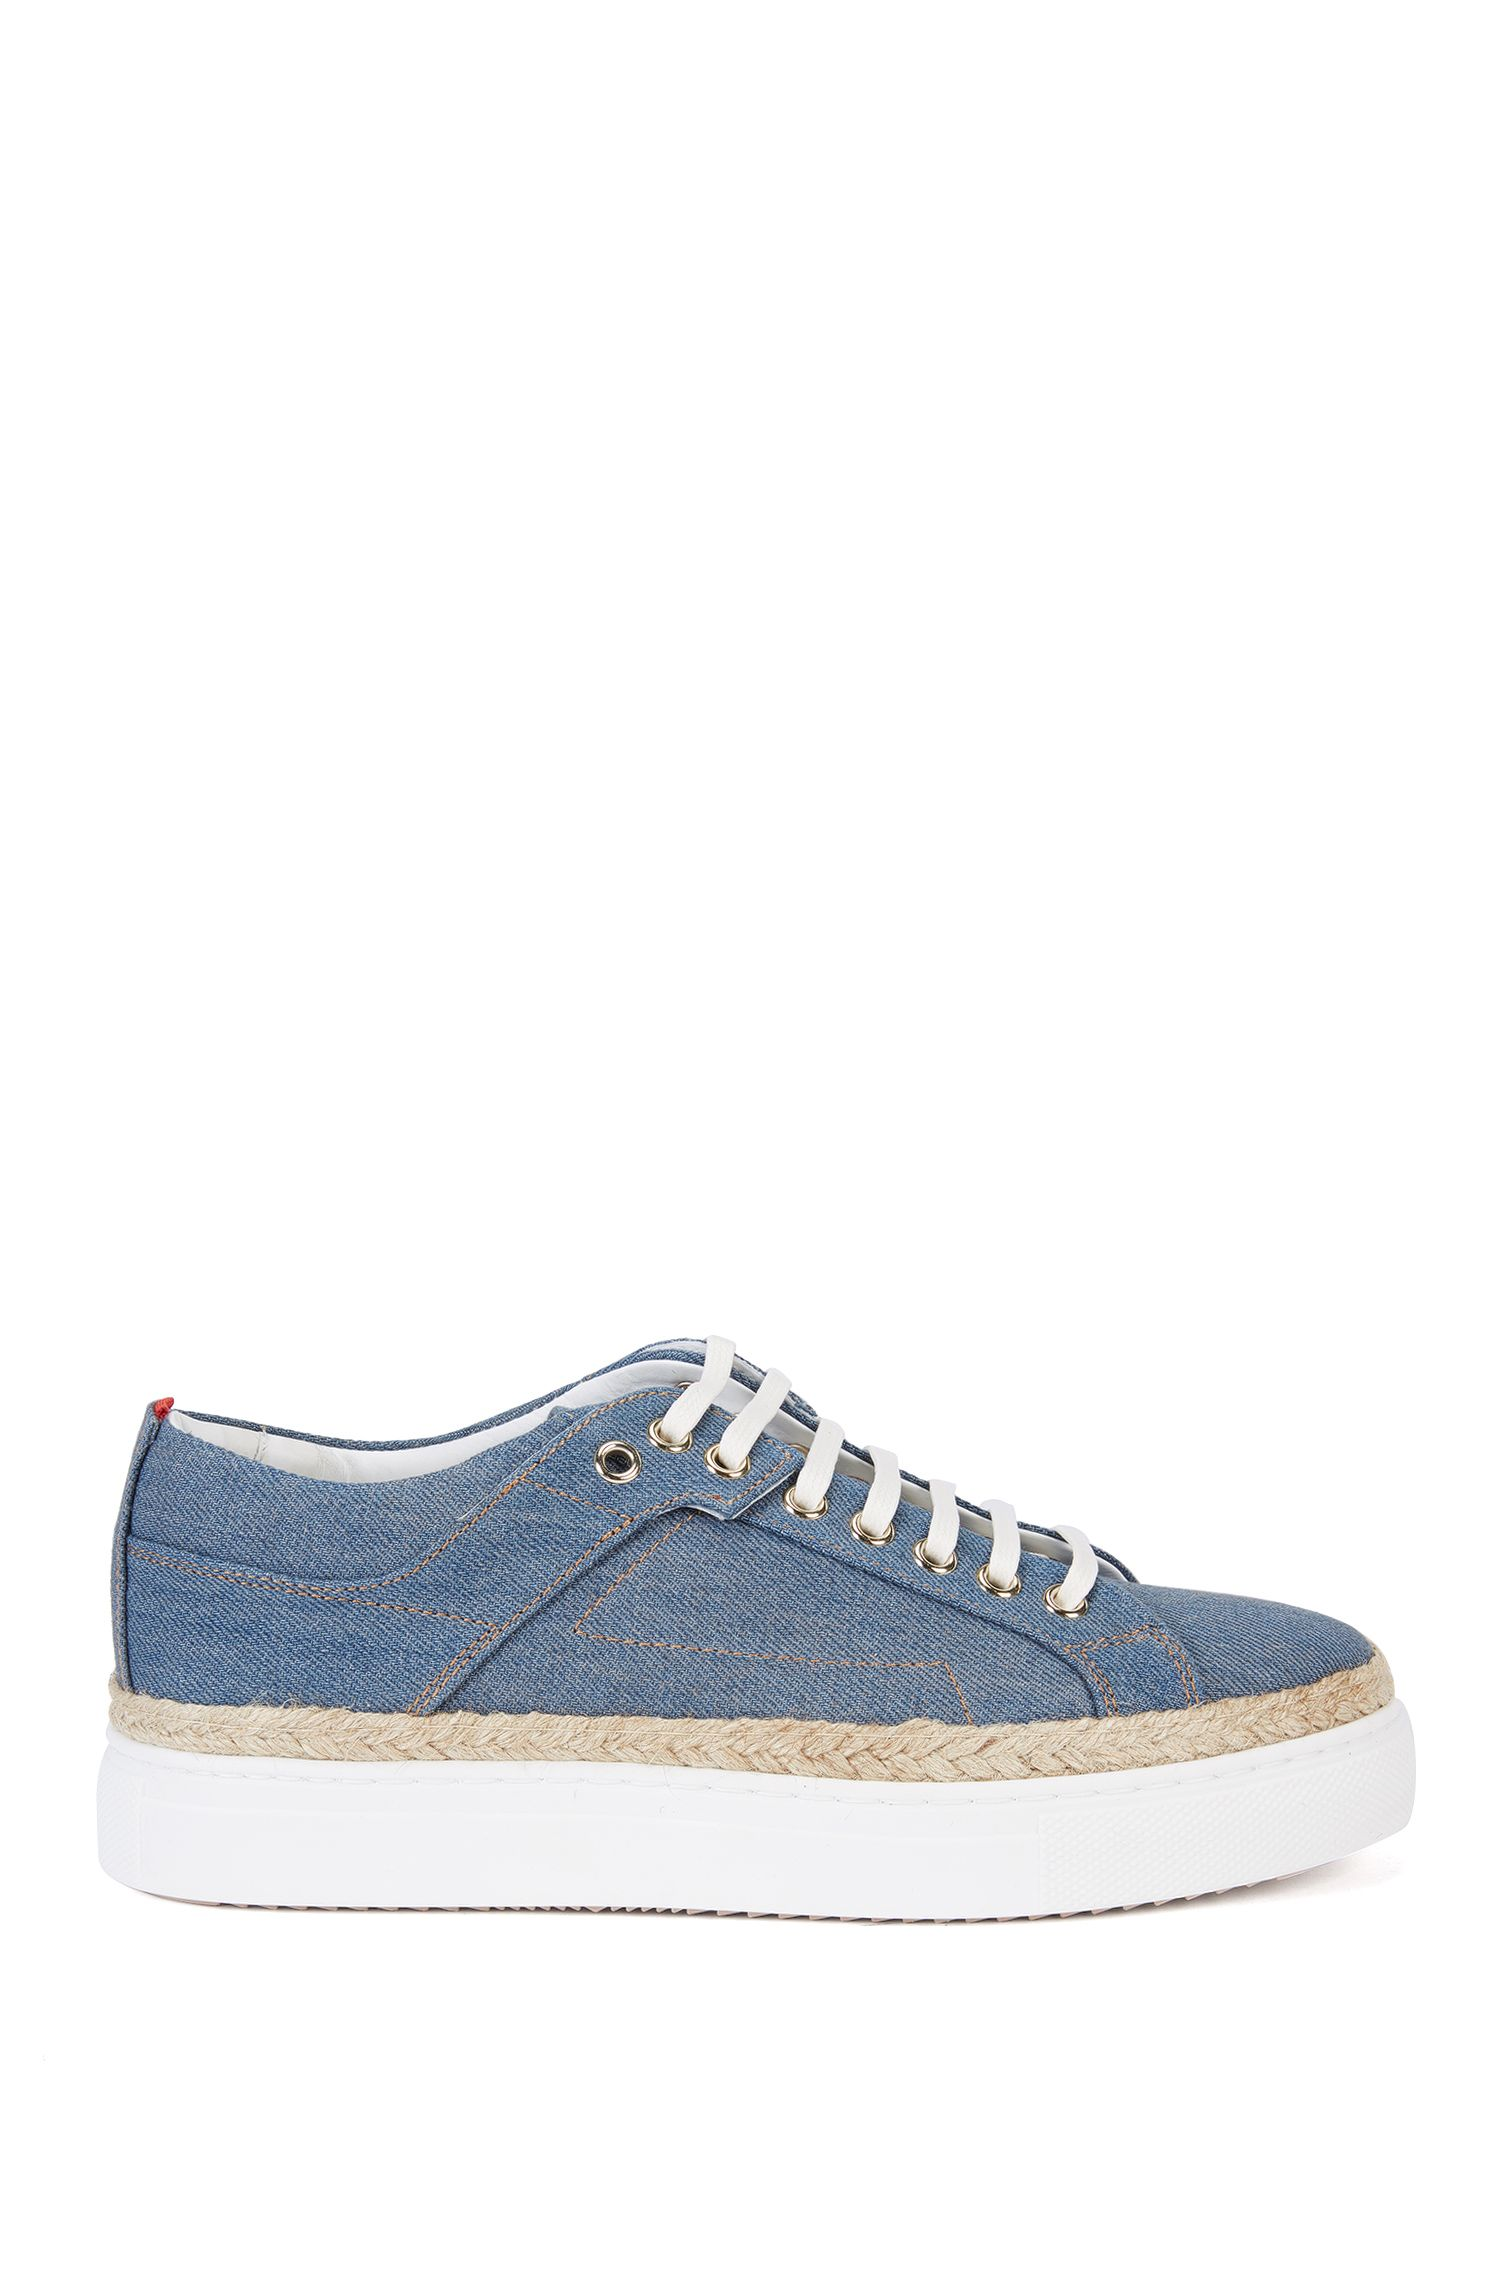 Sneakers in Denim-Optik mit Plateau-Sohle: 'Connie-D'